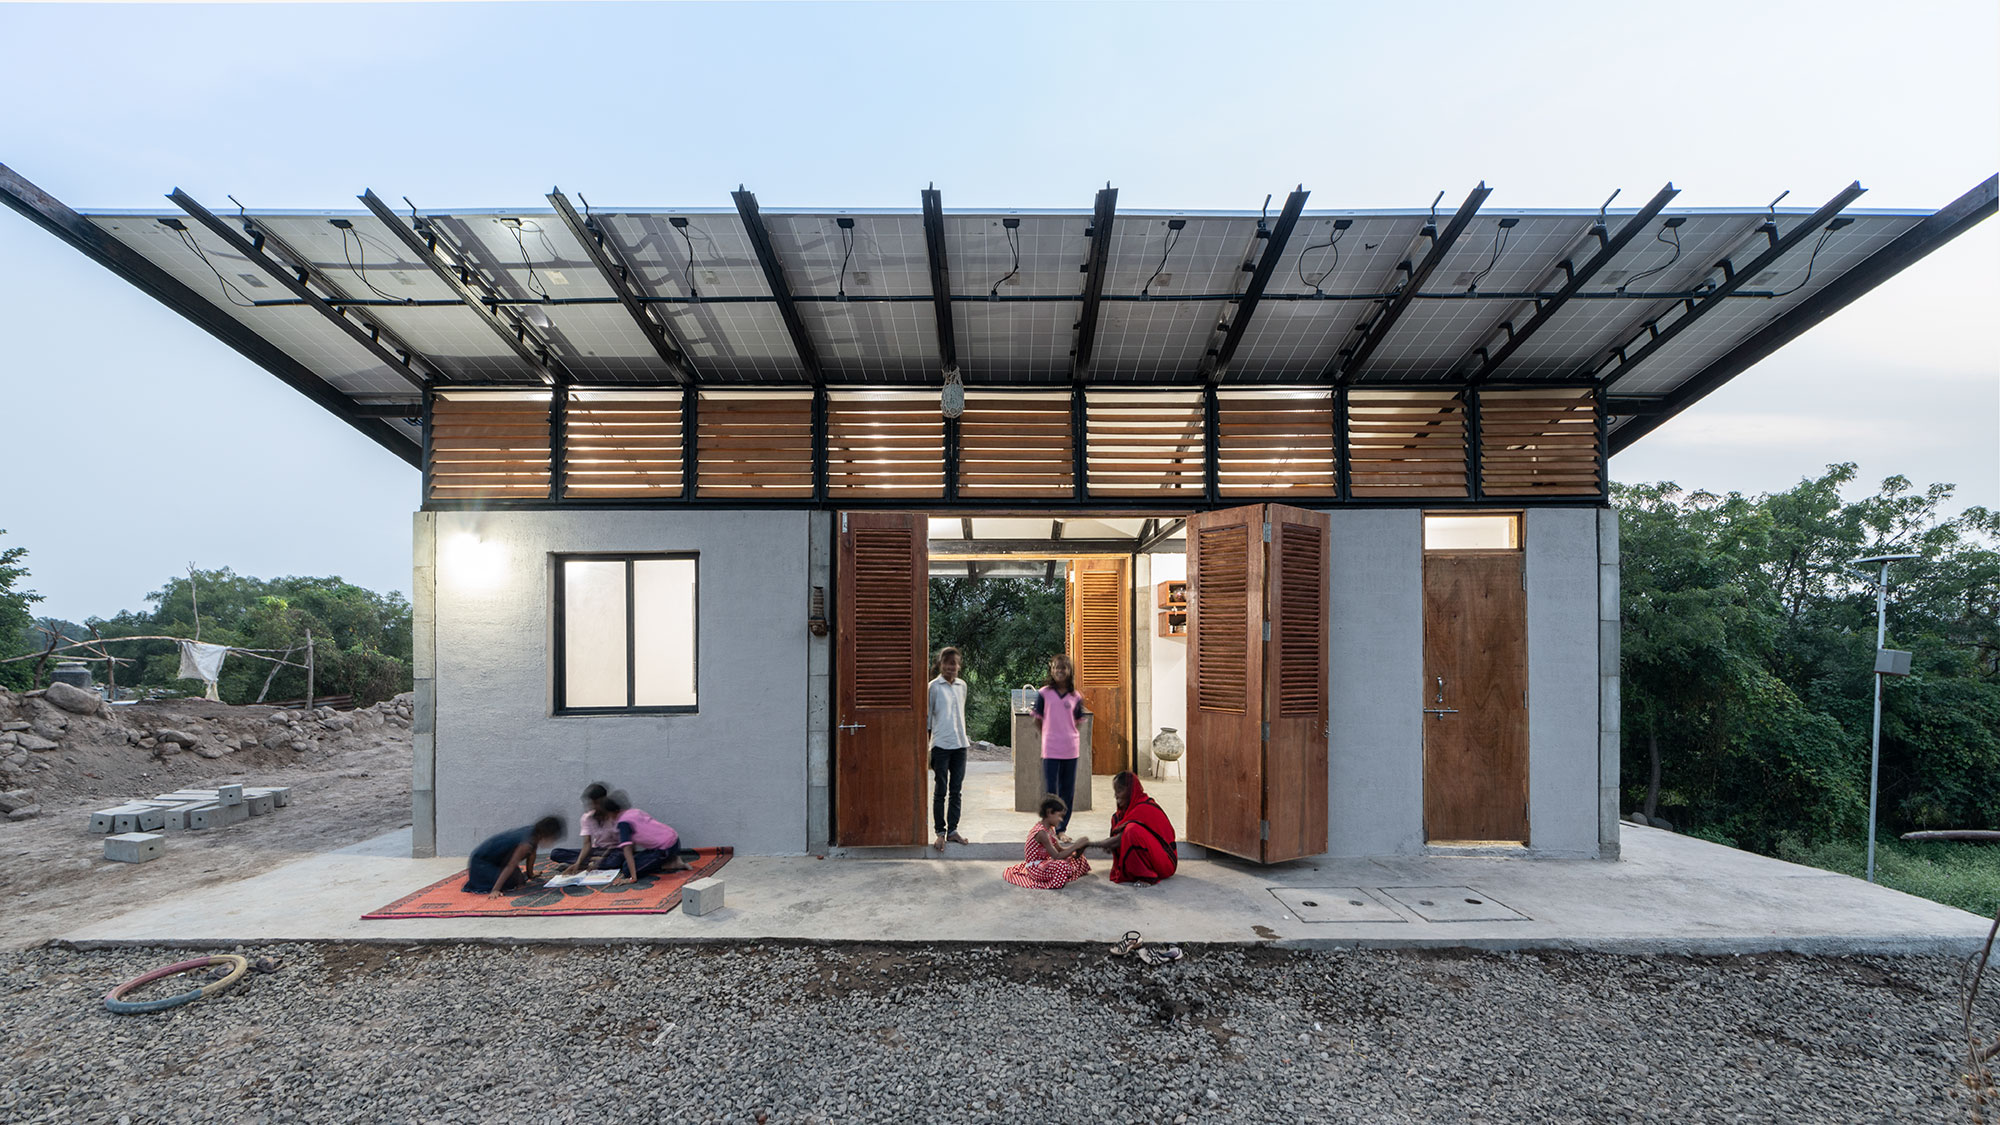 powerHYDE self financing carbon negative home for homeless families